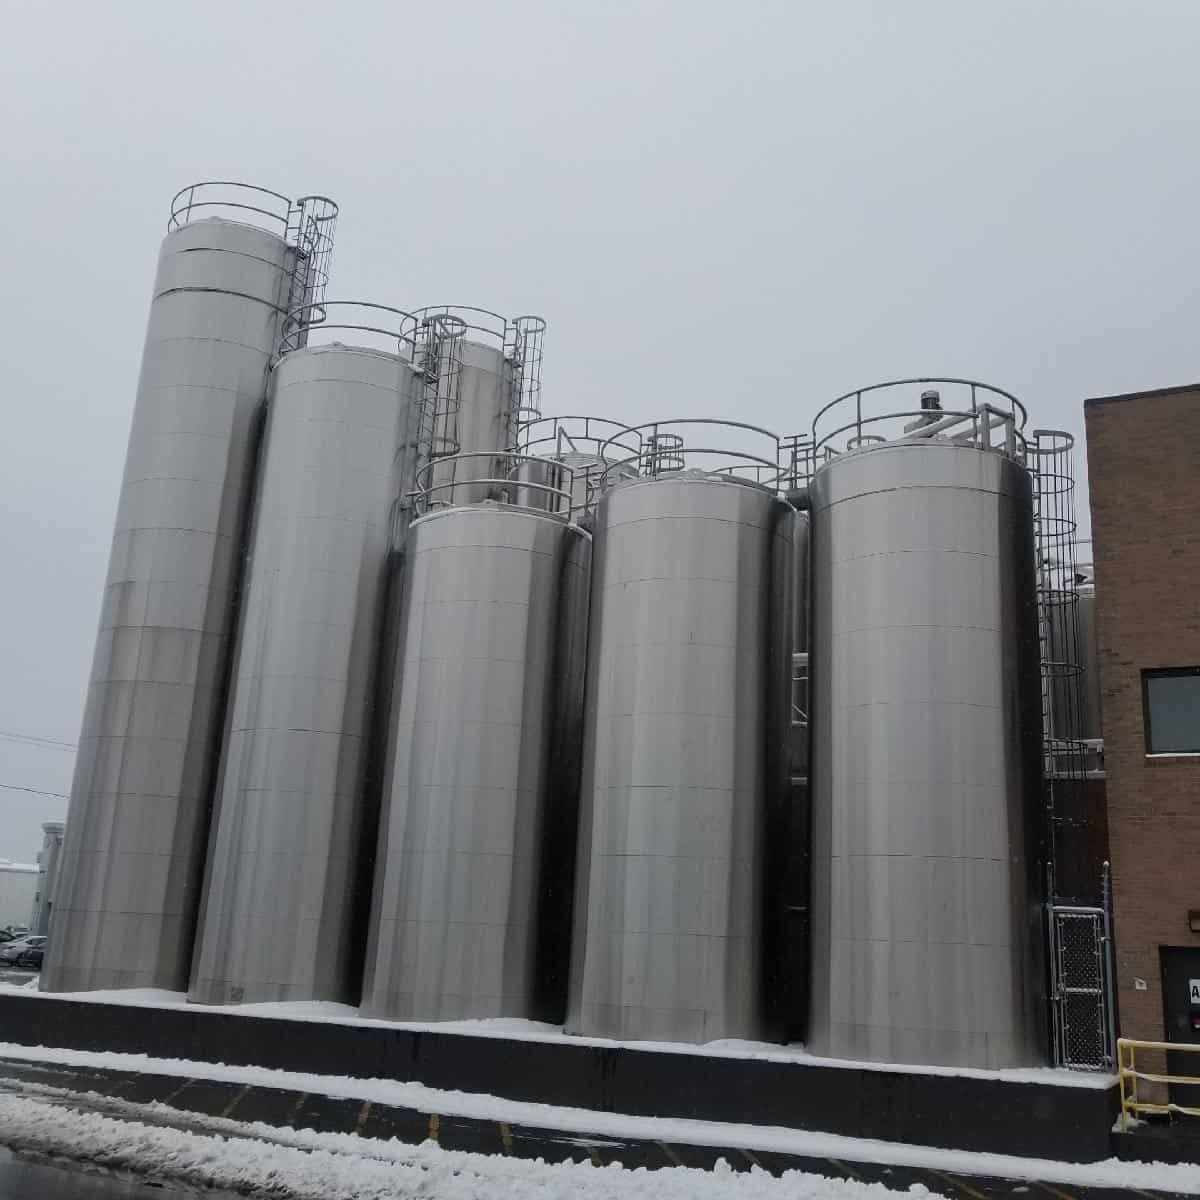 14 Grade-A S/S Silos AuctionCloses on March 14thMassachusetts